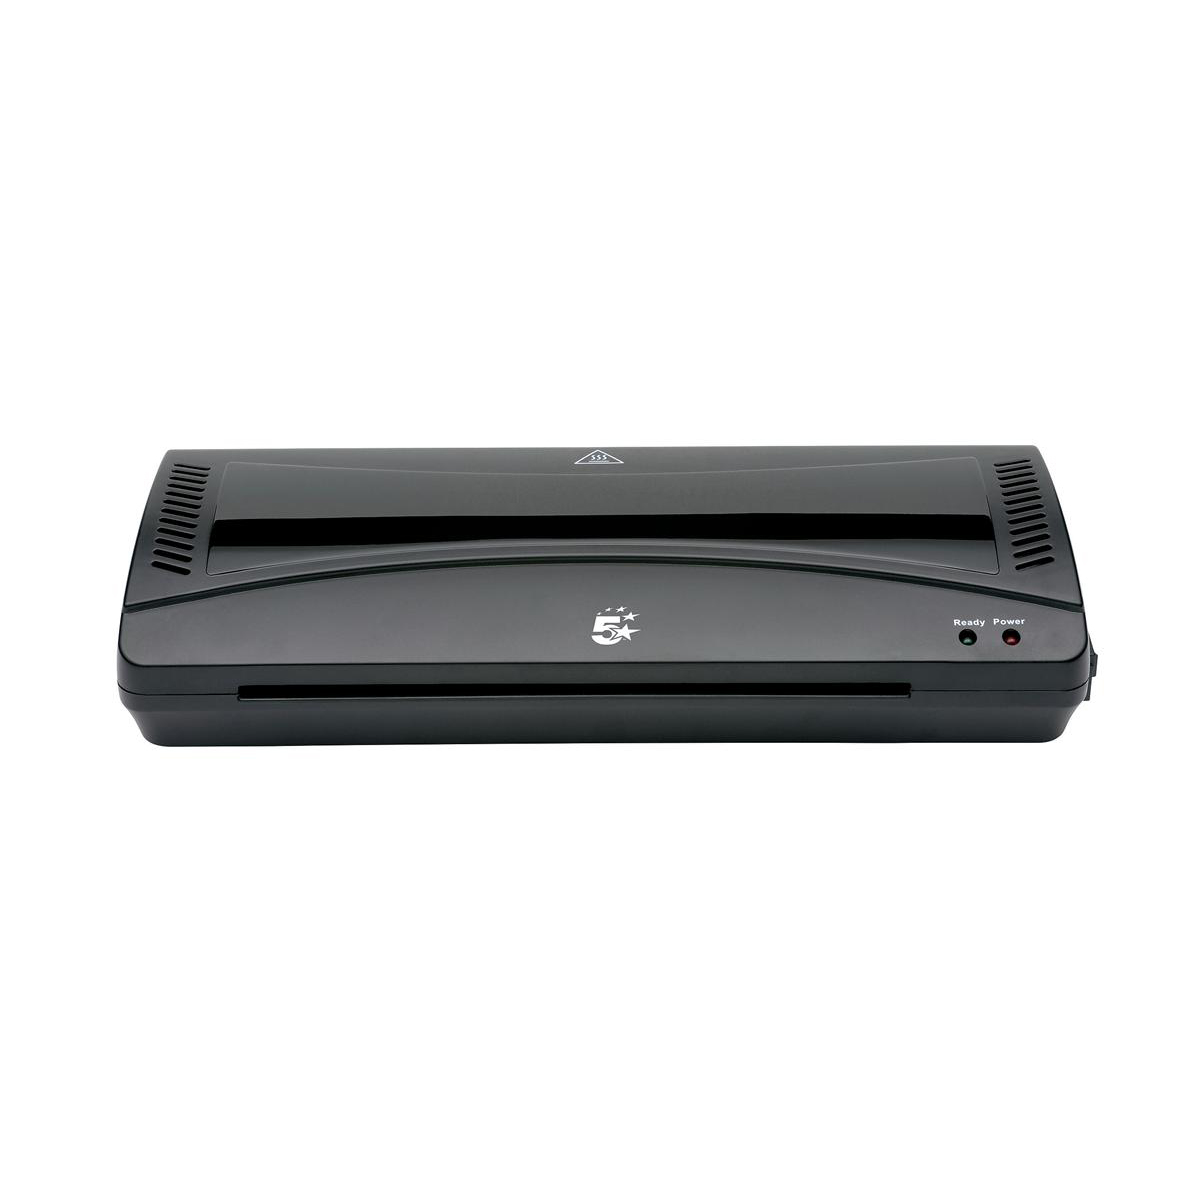 Laminators 5 Star Office Hot and Cold A4 Laminator Up to 2x100micron Pouches